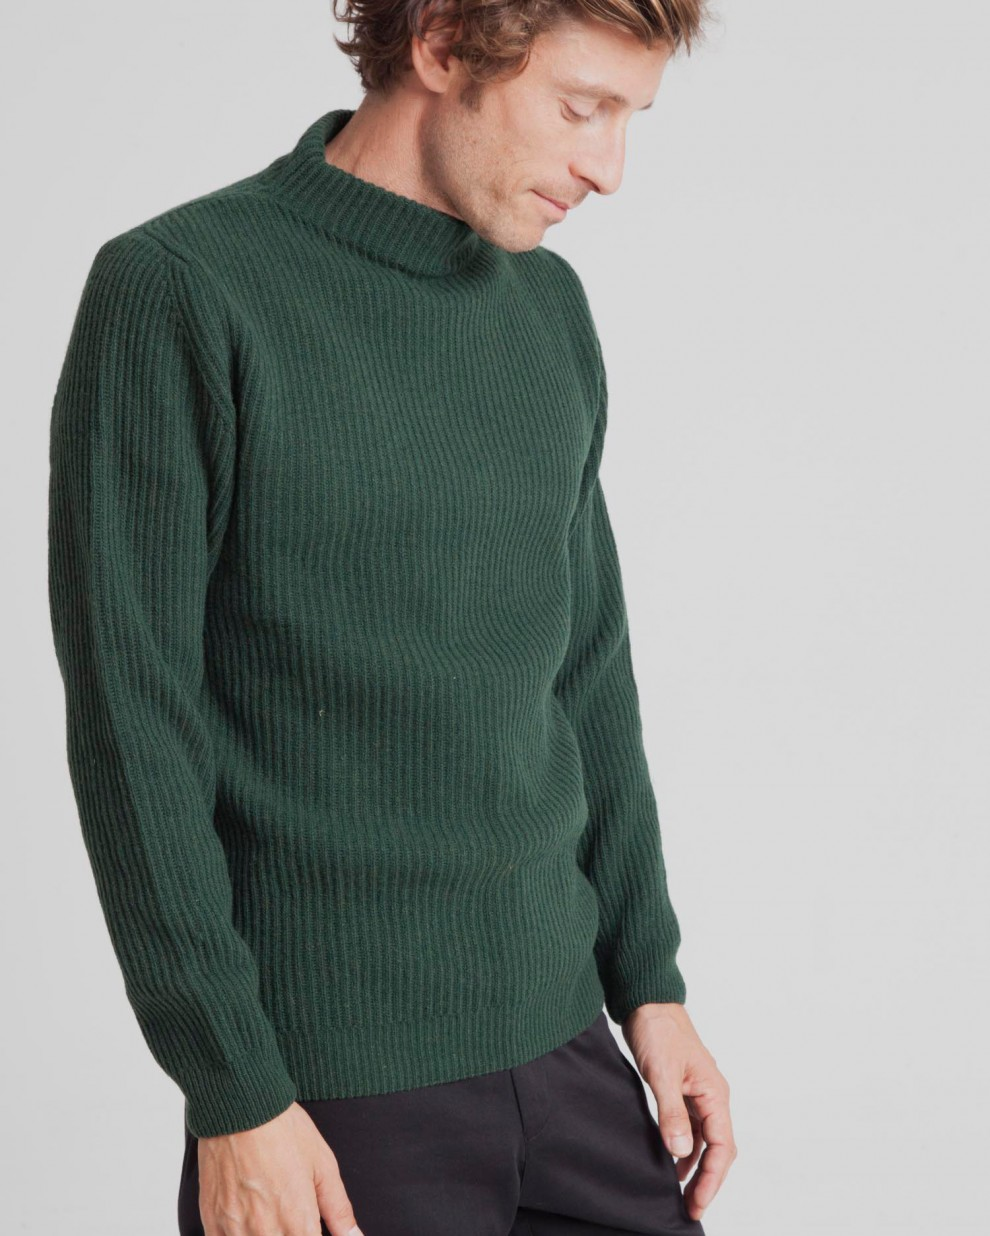 Green Perkins Thick Sweater